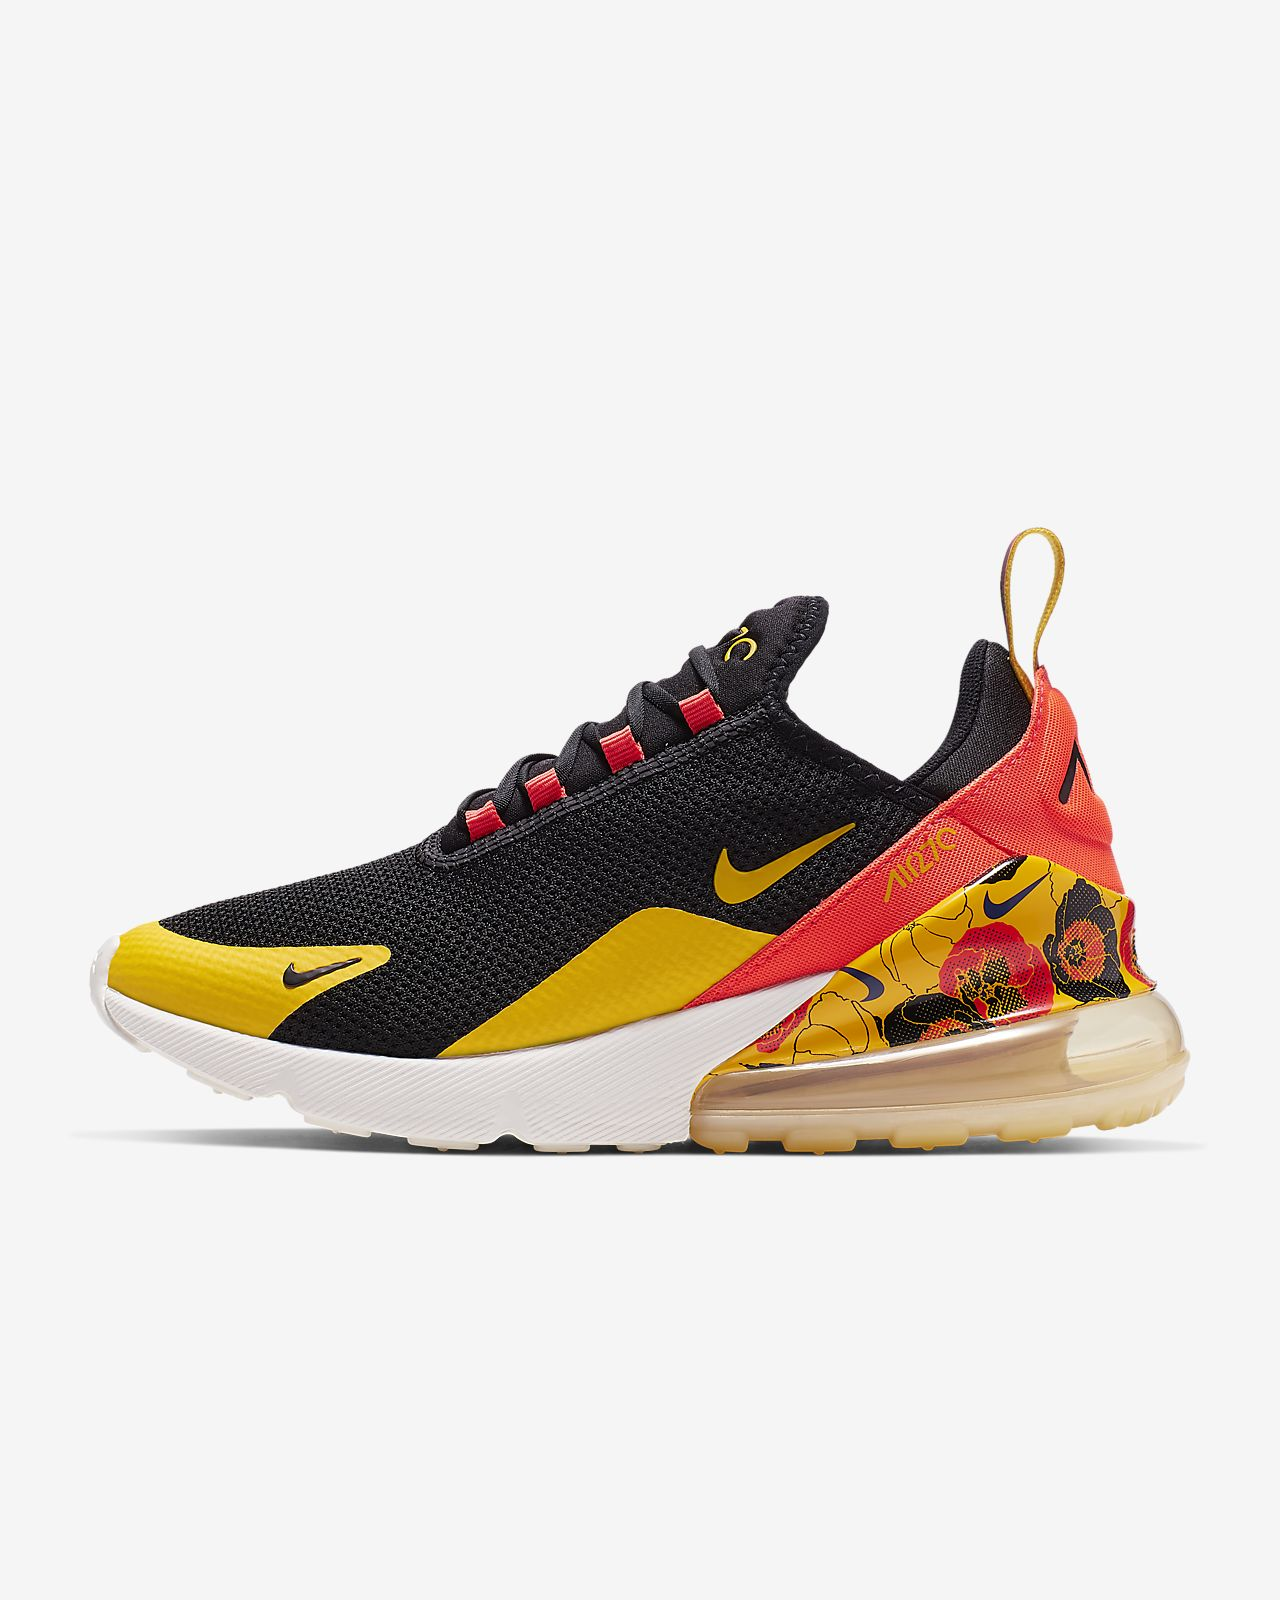 a8264745e6 Nike Air Max 270 SE Floral Women's Shoe